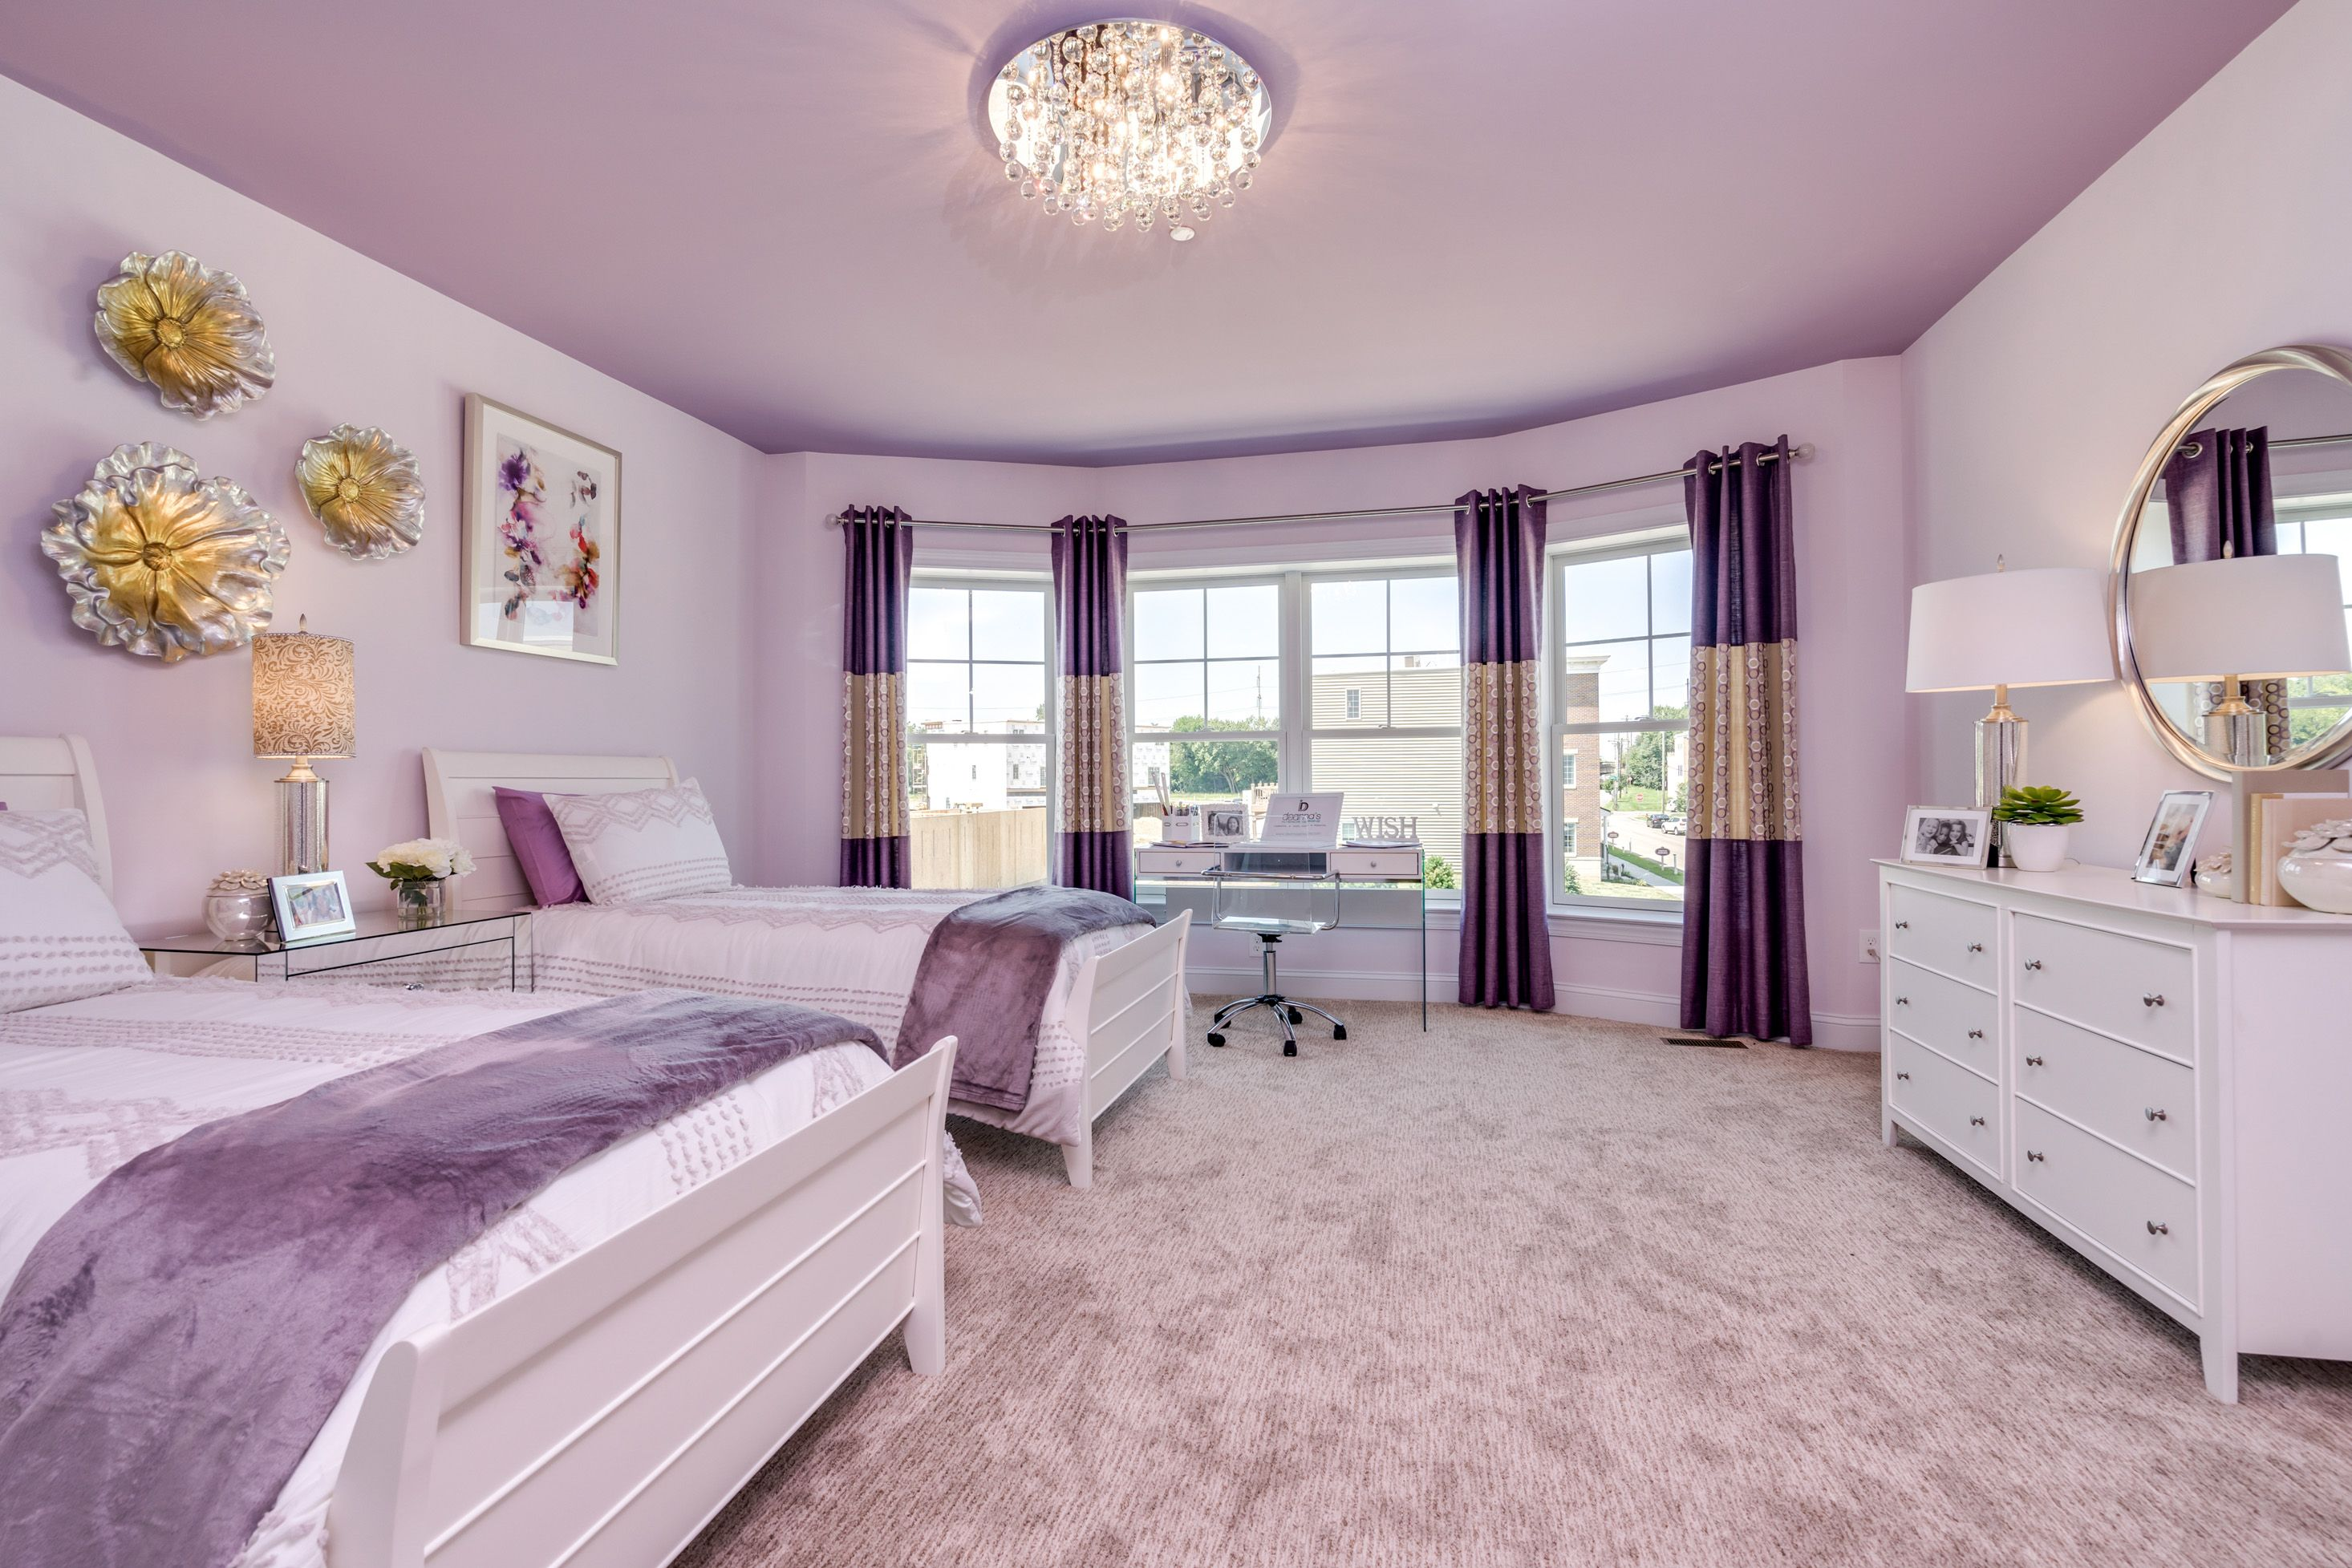 Bedroom featured in the Gianna By Judd Builders and Developers in Philadelphia, PA